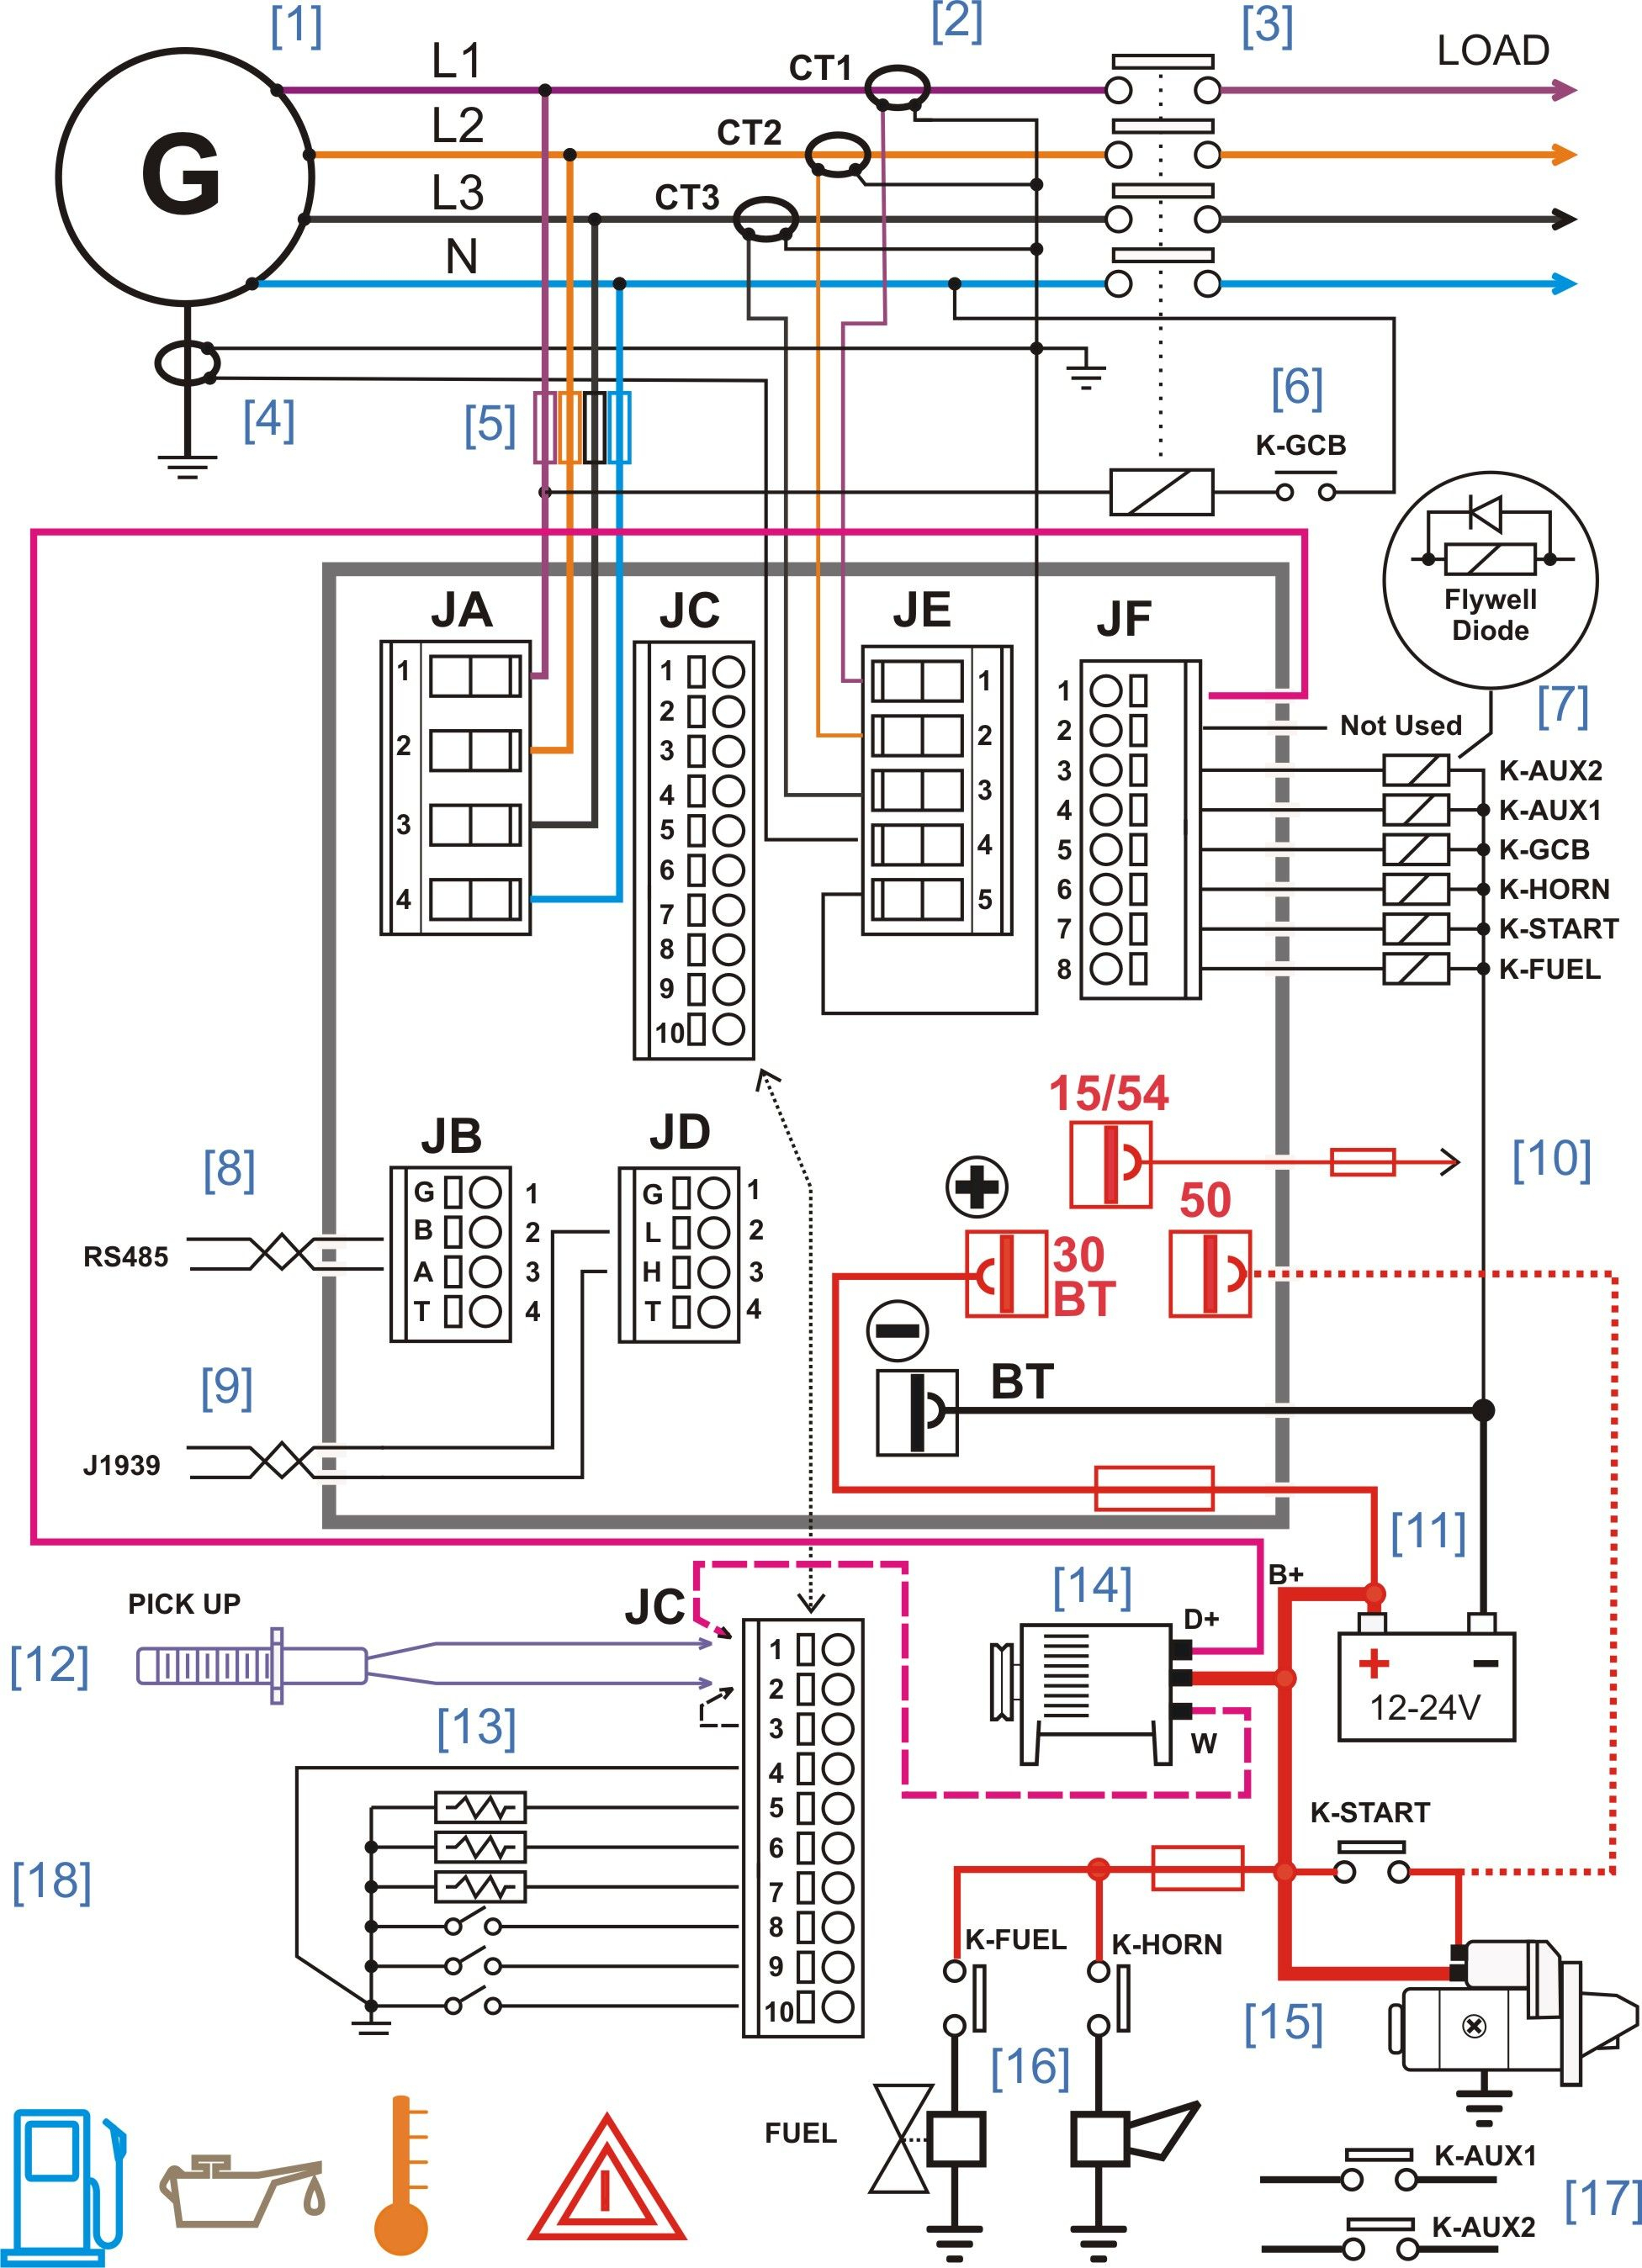 Generator Panel Wiring - Data Wiring Diagram Detailed - Solar Panel Wiring Diagram